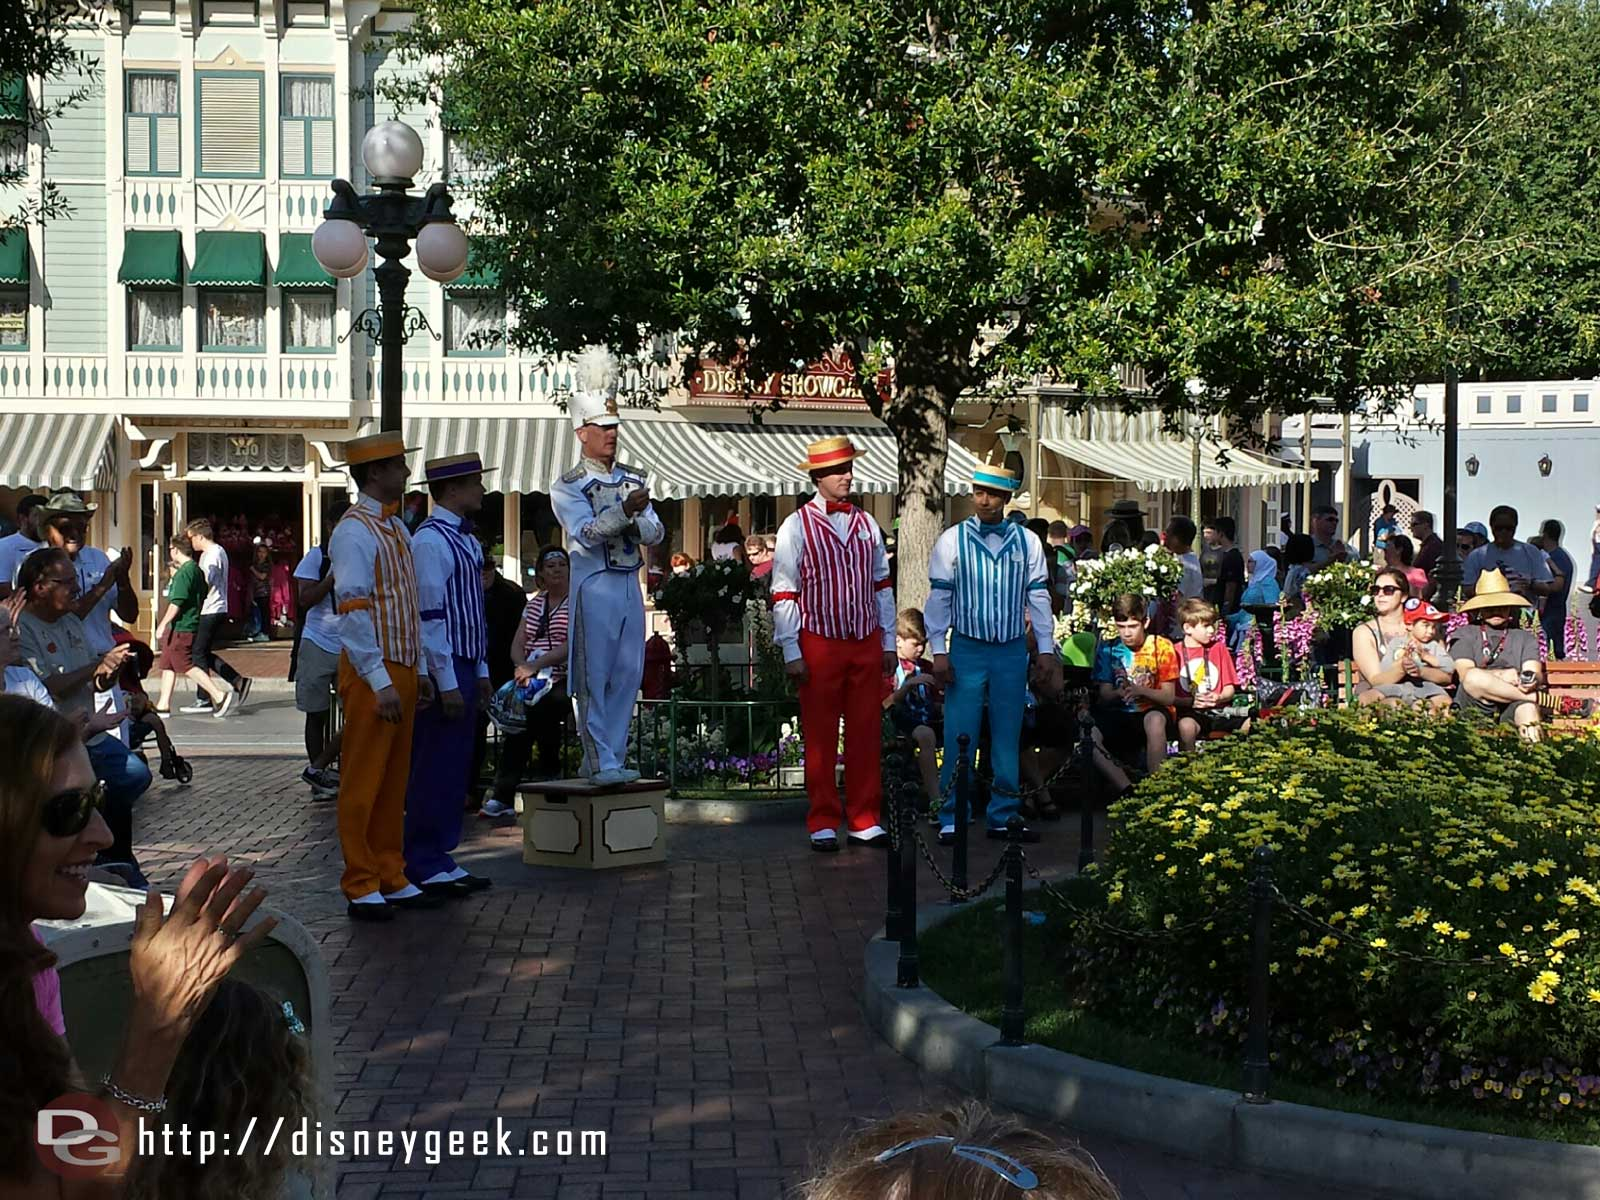 The Dapper Dans of #Disneyland @ the nightly Flag Retreat Ceremony